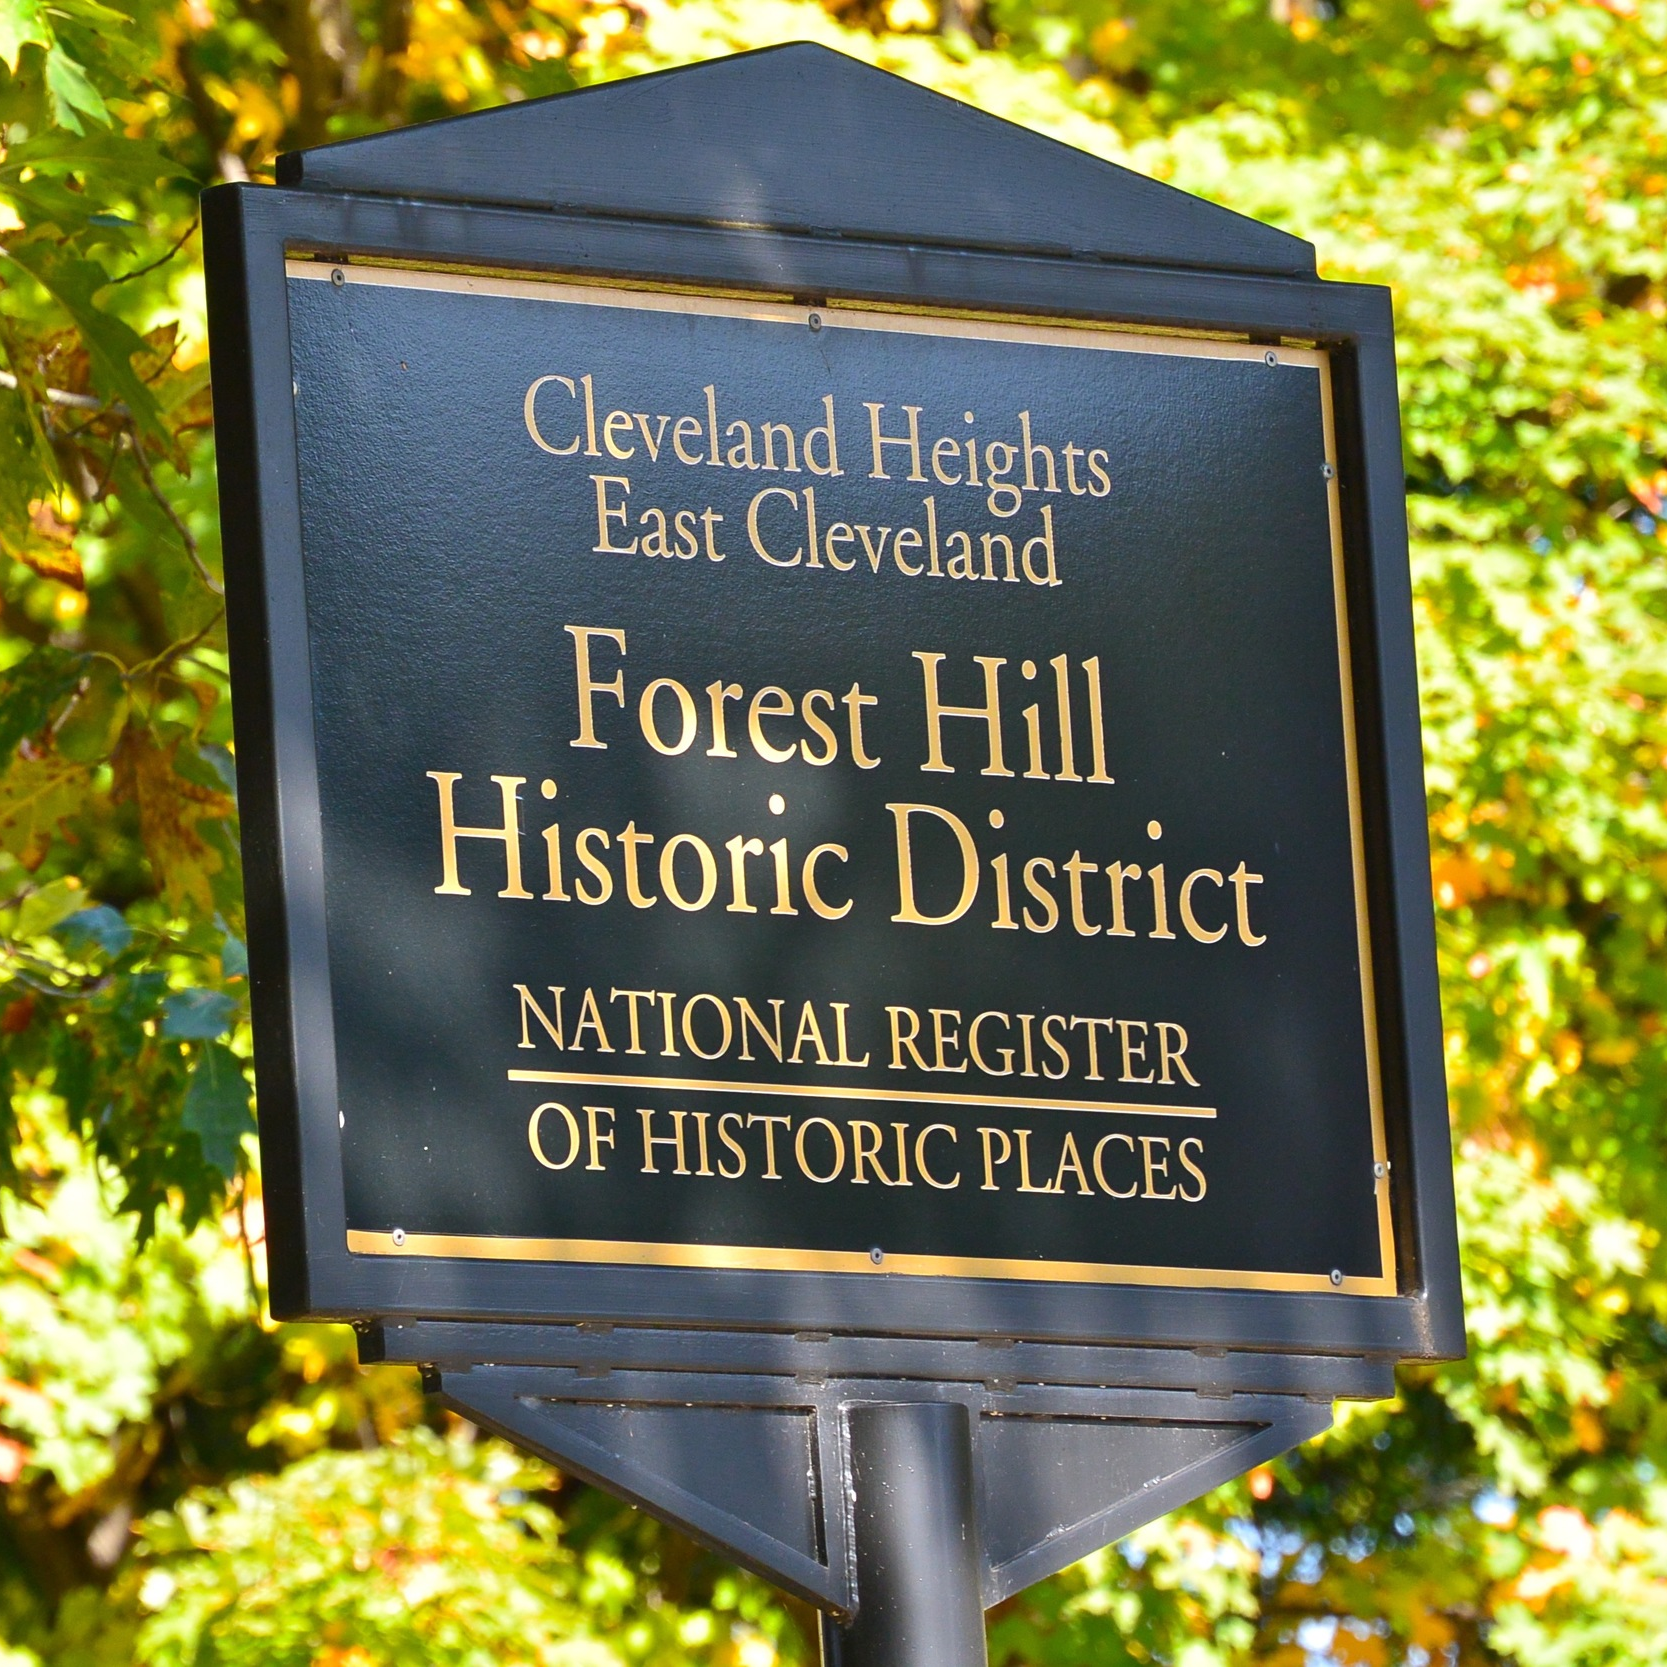 Forest Hill Protective Deed Covenants